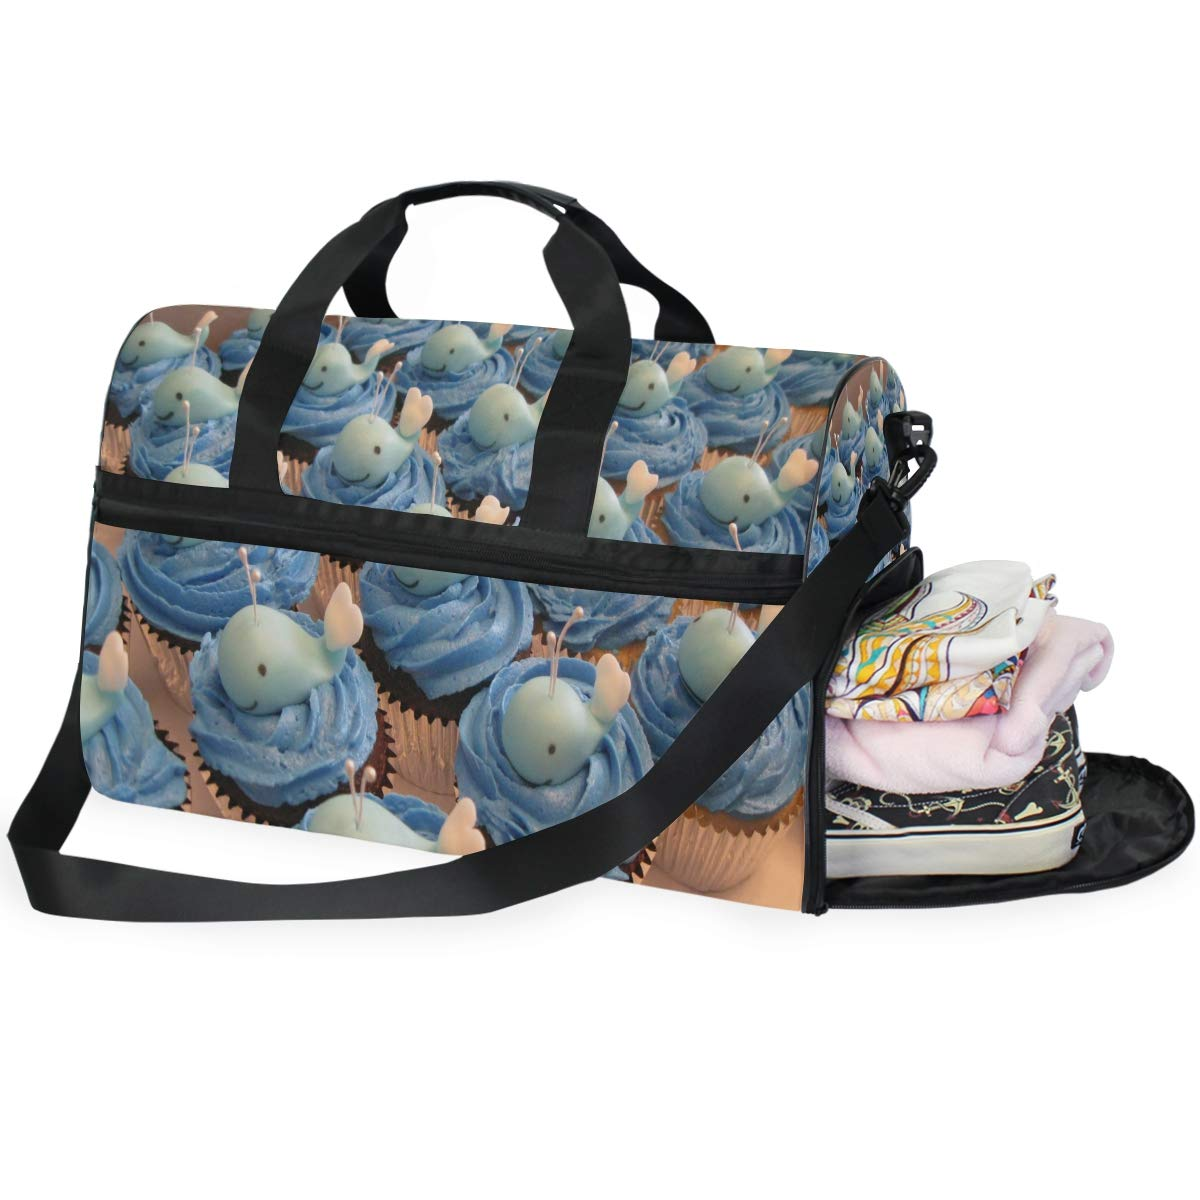 Travel Tote Luggage Weekender Duffle Bag We Wish You A Merry Christmas Large Canvas shoulder bag with Shoe Compartment